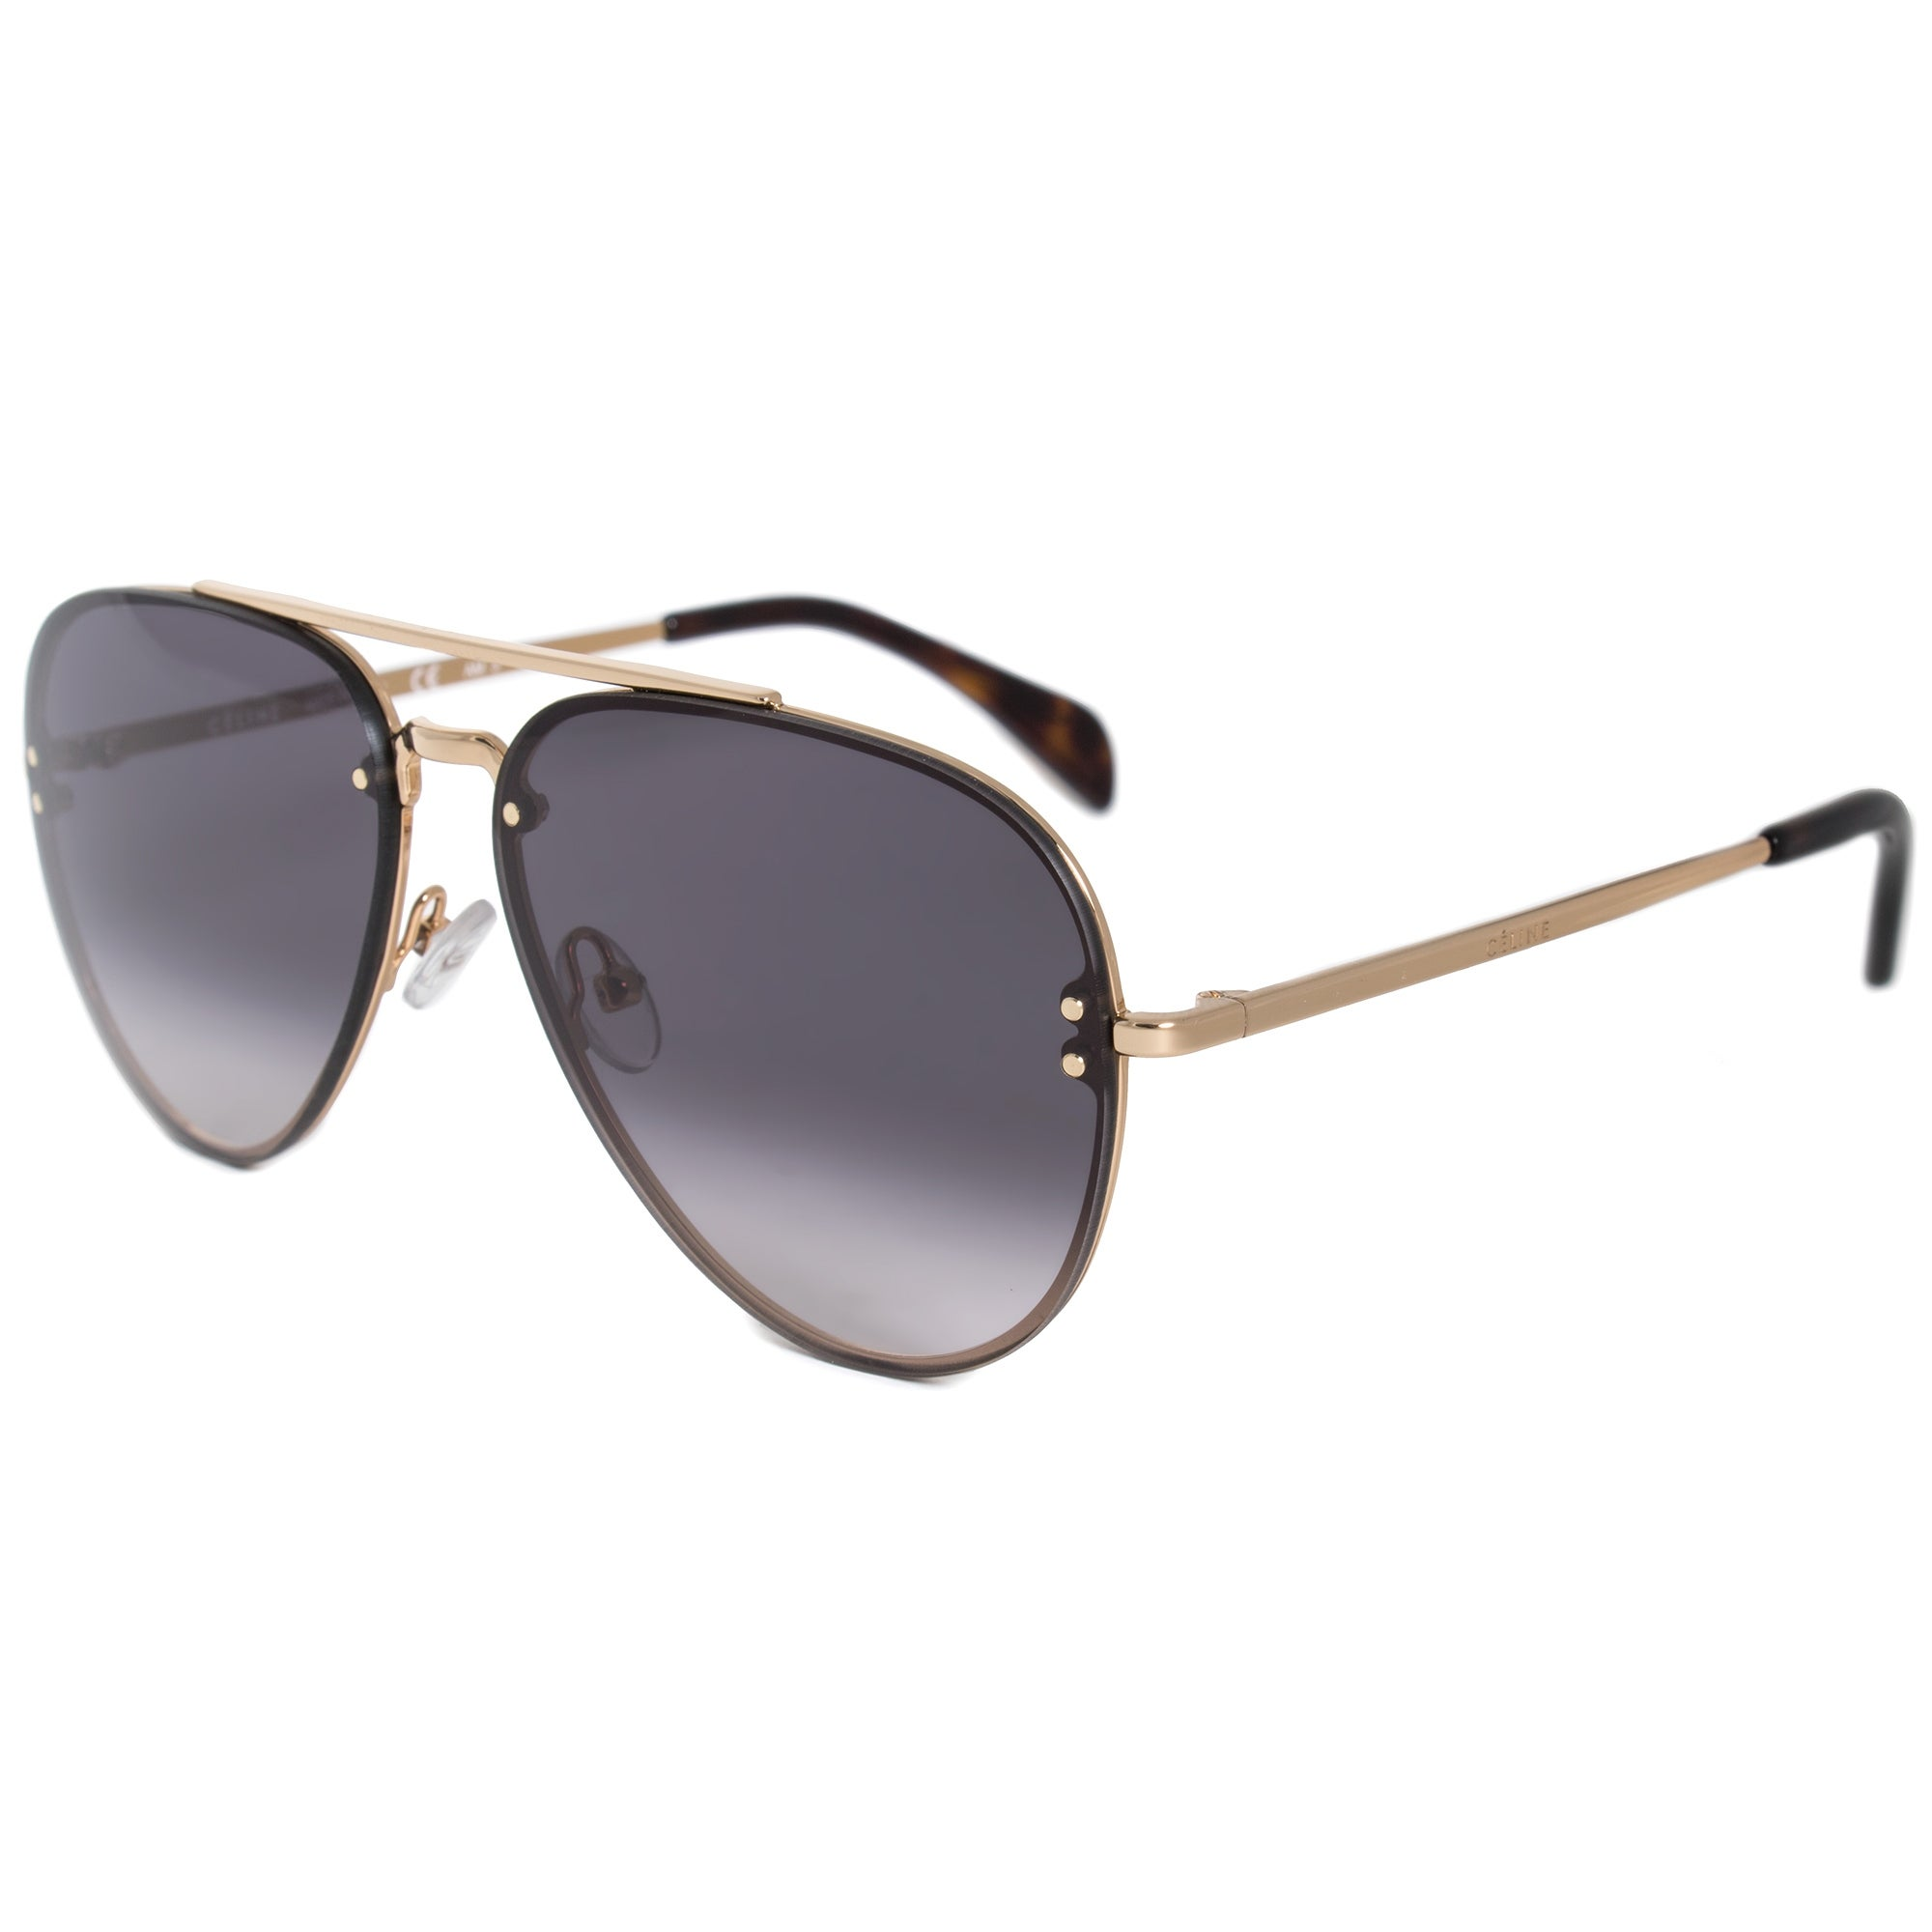 83864384d6f Shop Celine Pilot Sunglasses 41392S J5G W2 58 - Free Shipping Today -  Overstock - 19623338